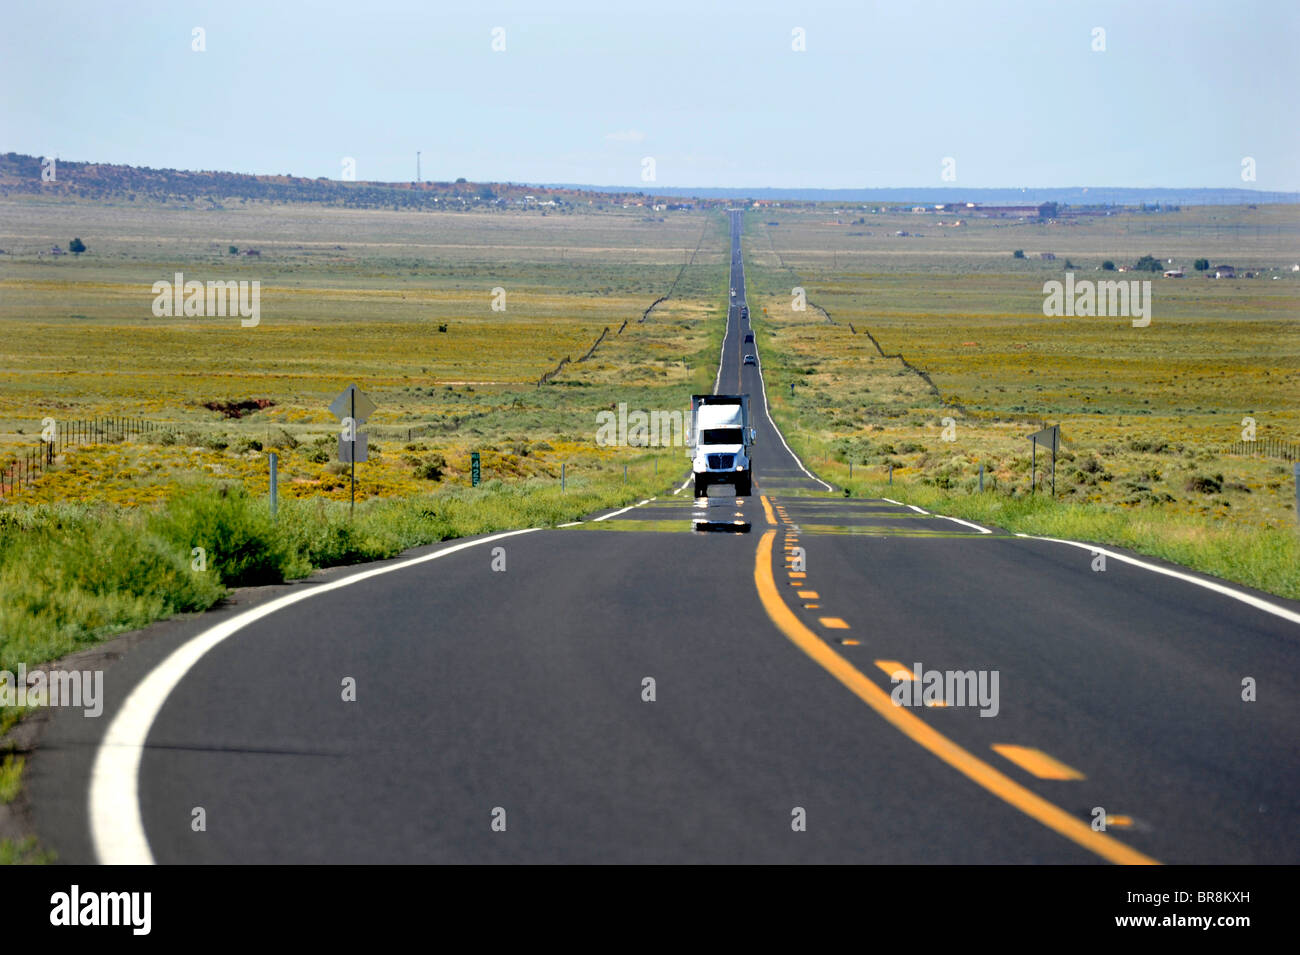 Long straight roads in desert country Arizona USA - Stock Image